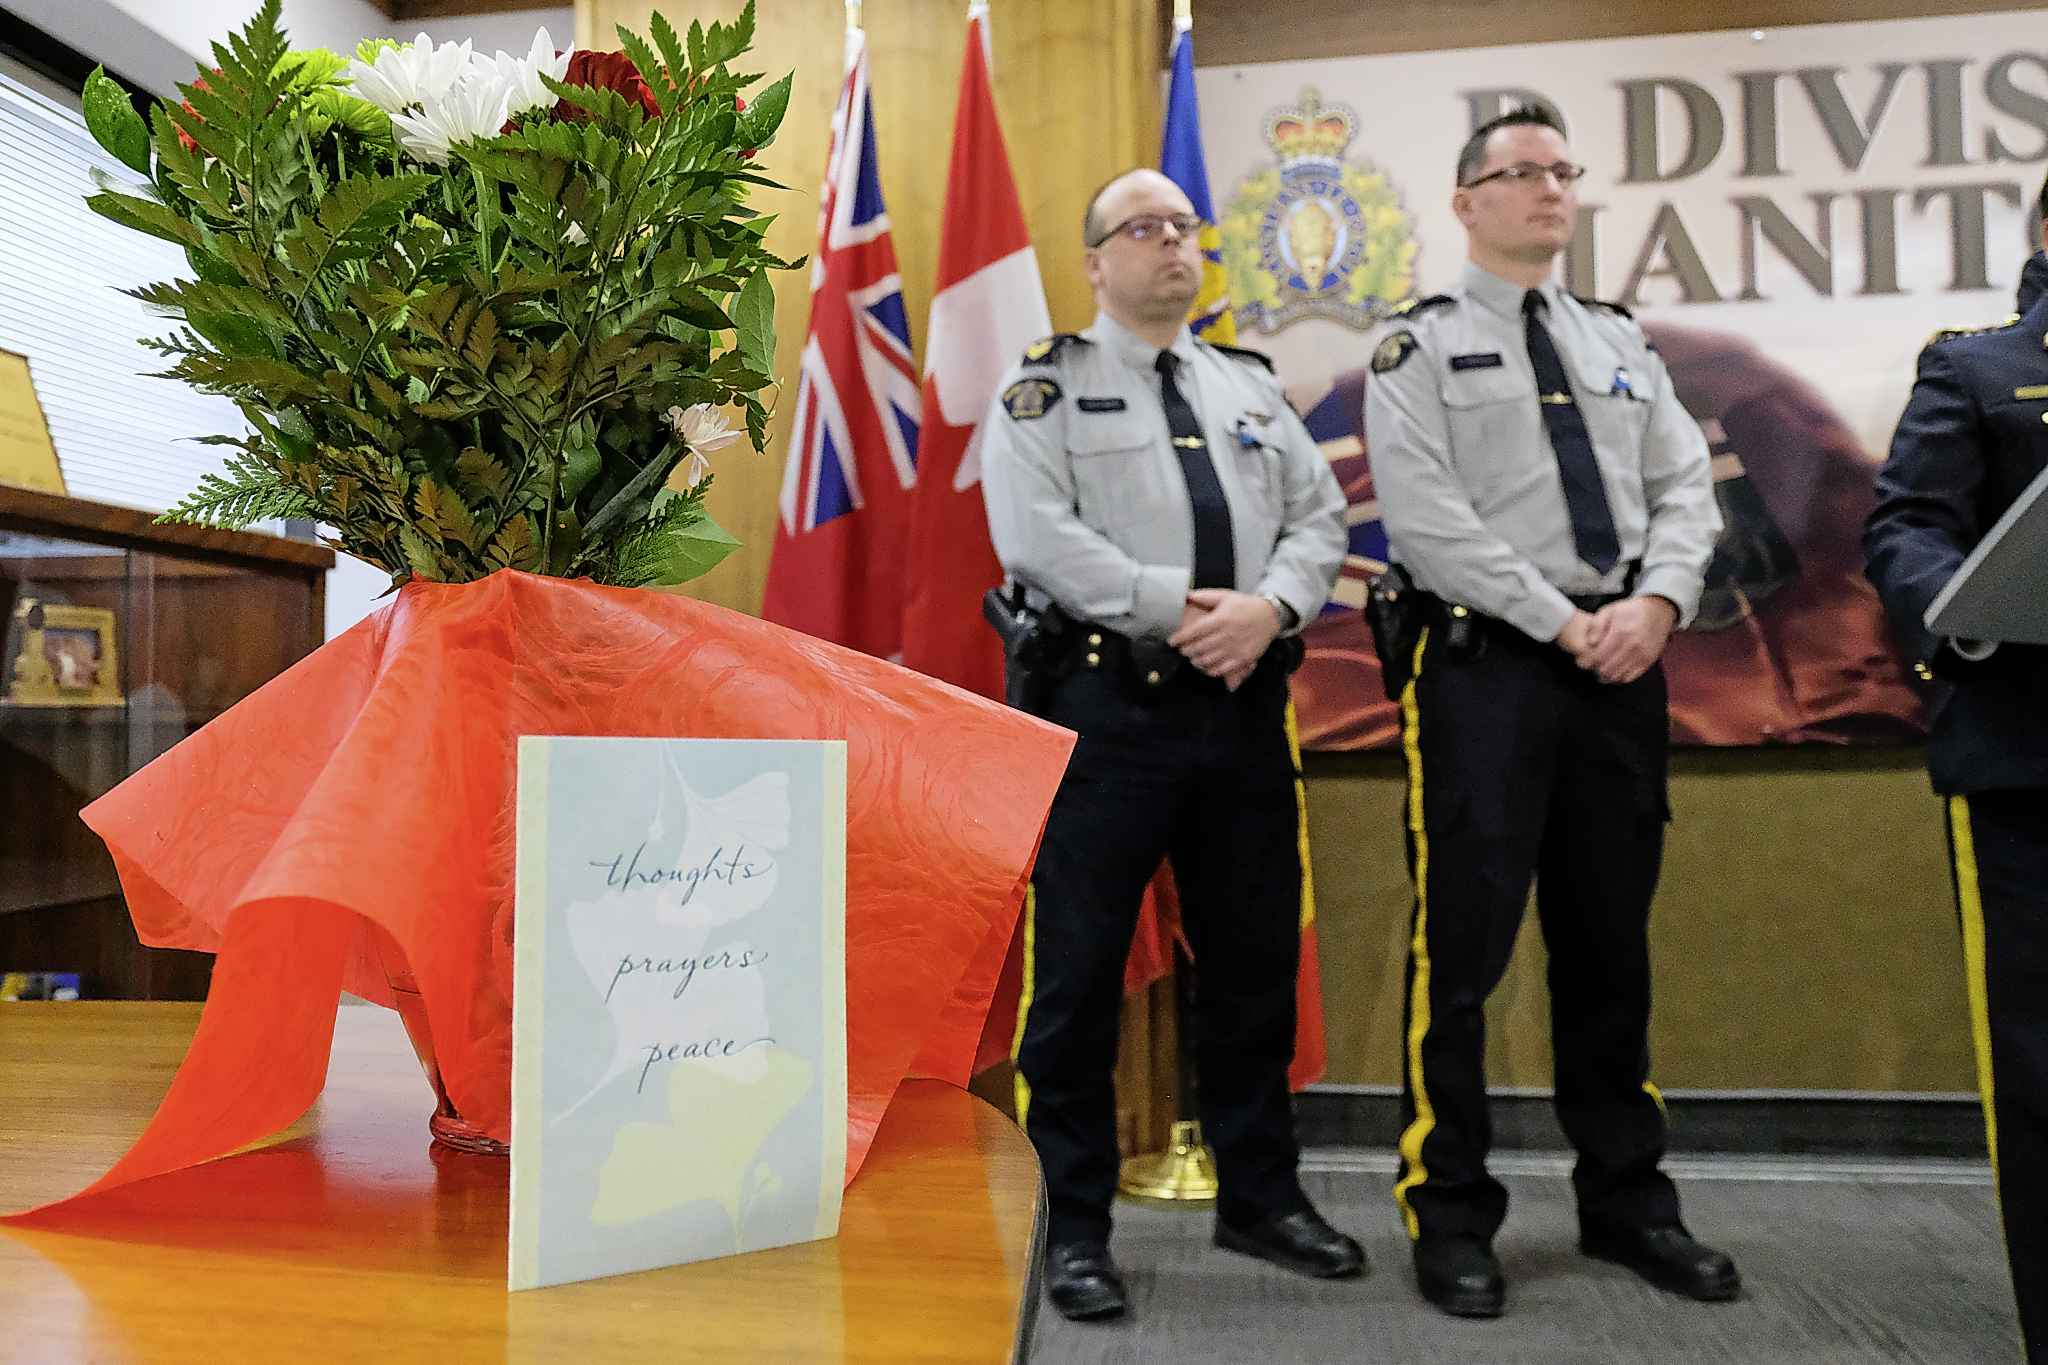 Flowers and a card sit on table at D Division Headquarters Saturday afternoon as RCMP Assistant Commissioner Jane MacLatchy provides details about the death of Const. Allan Poapst. (Daniel Crump / Winnipeg Free Press)